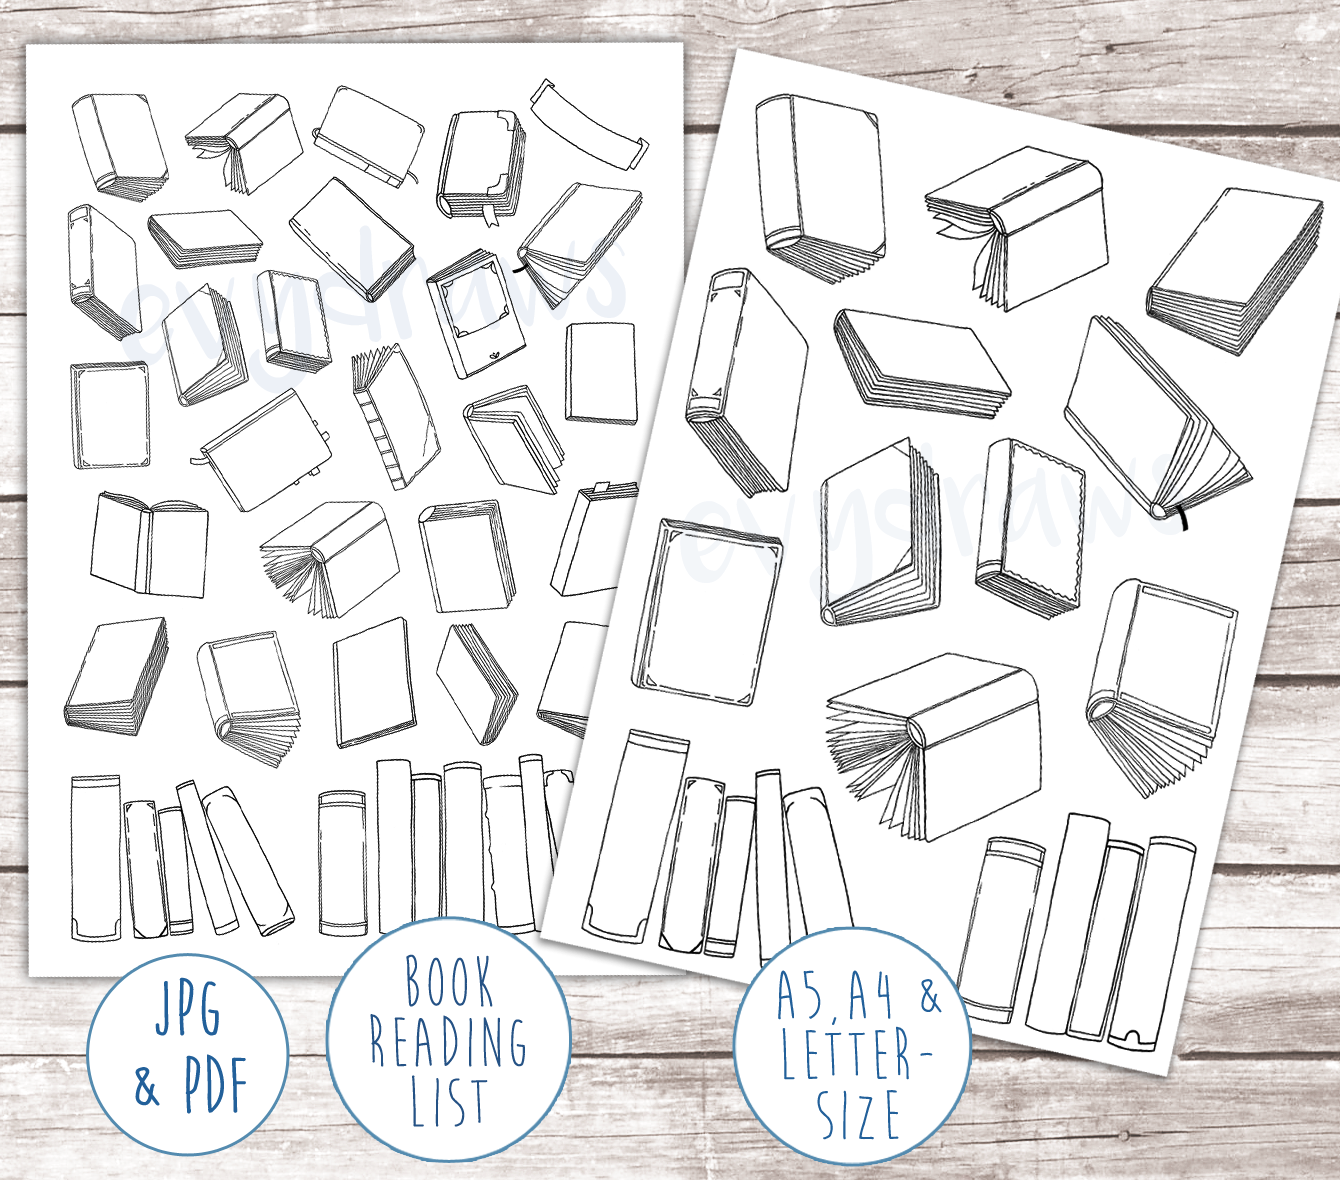 I created a printable Book Reading Tracker based on my own doodles. For bullet journals and planners, this A4, A5, letter-size printing friendly digital download with two versions of book drawings is the perfect addition to your yearly collectionis if you're a book lover and avid reader! Track your reading progress, remember future titles on your TBR, color in covers or decorate them with doodles of your own.